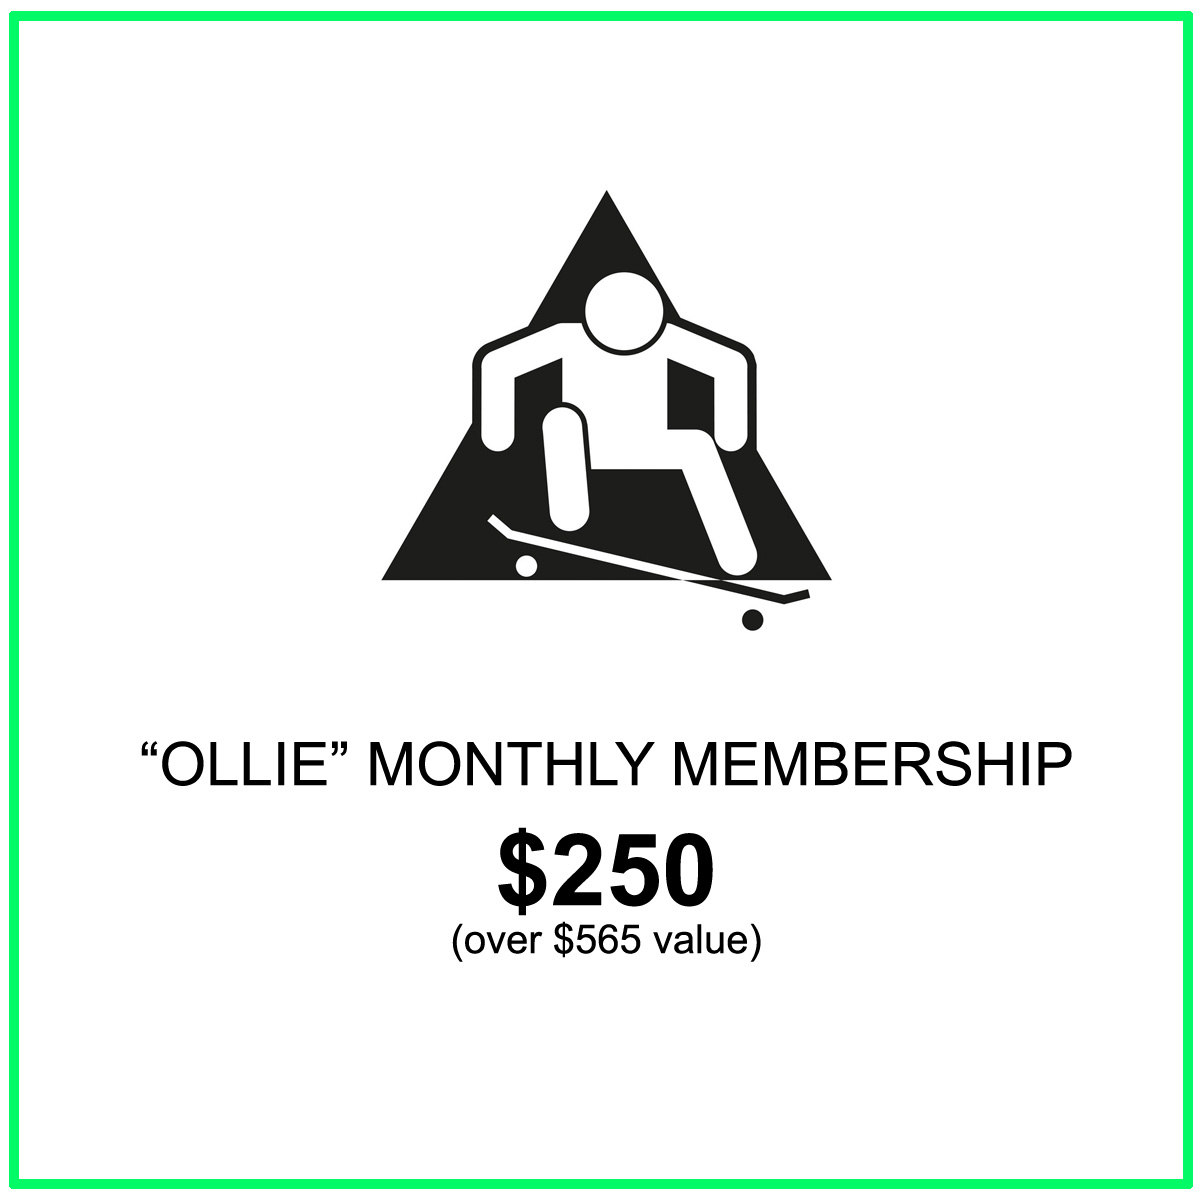 olliemembership_website.jpg